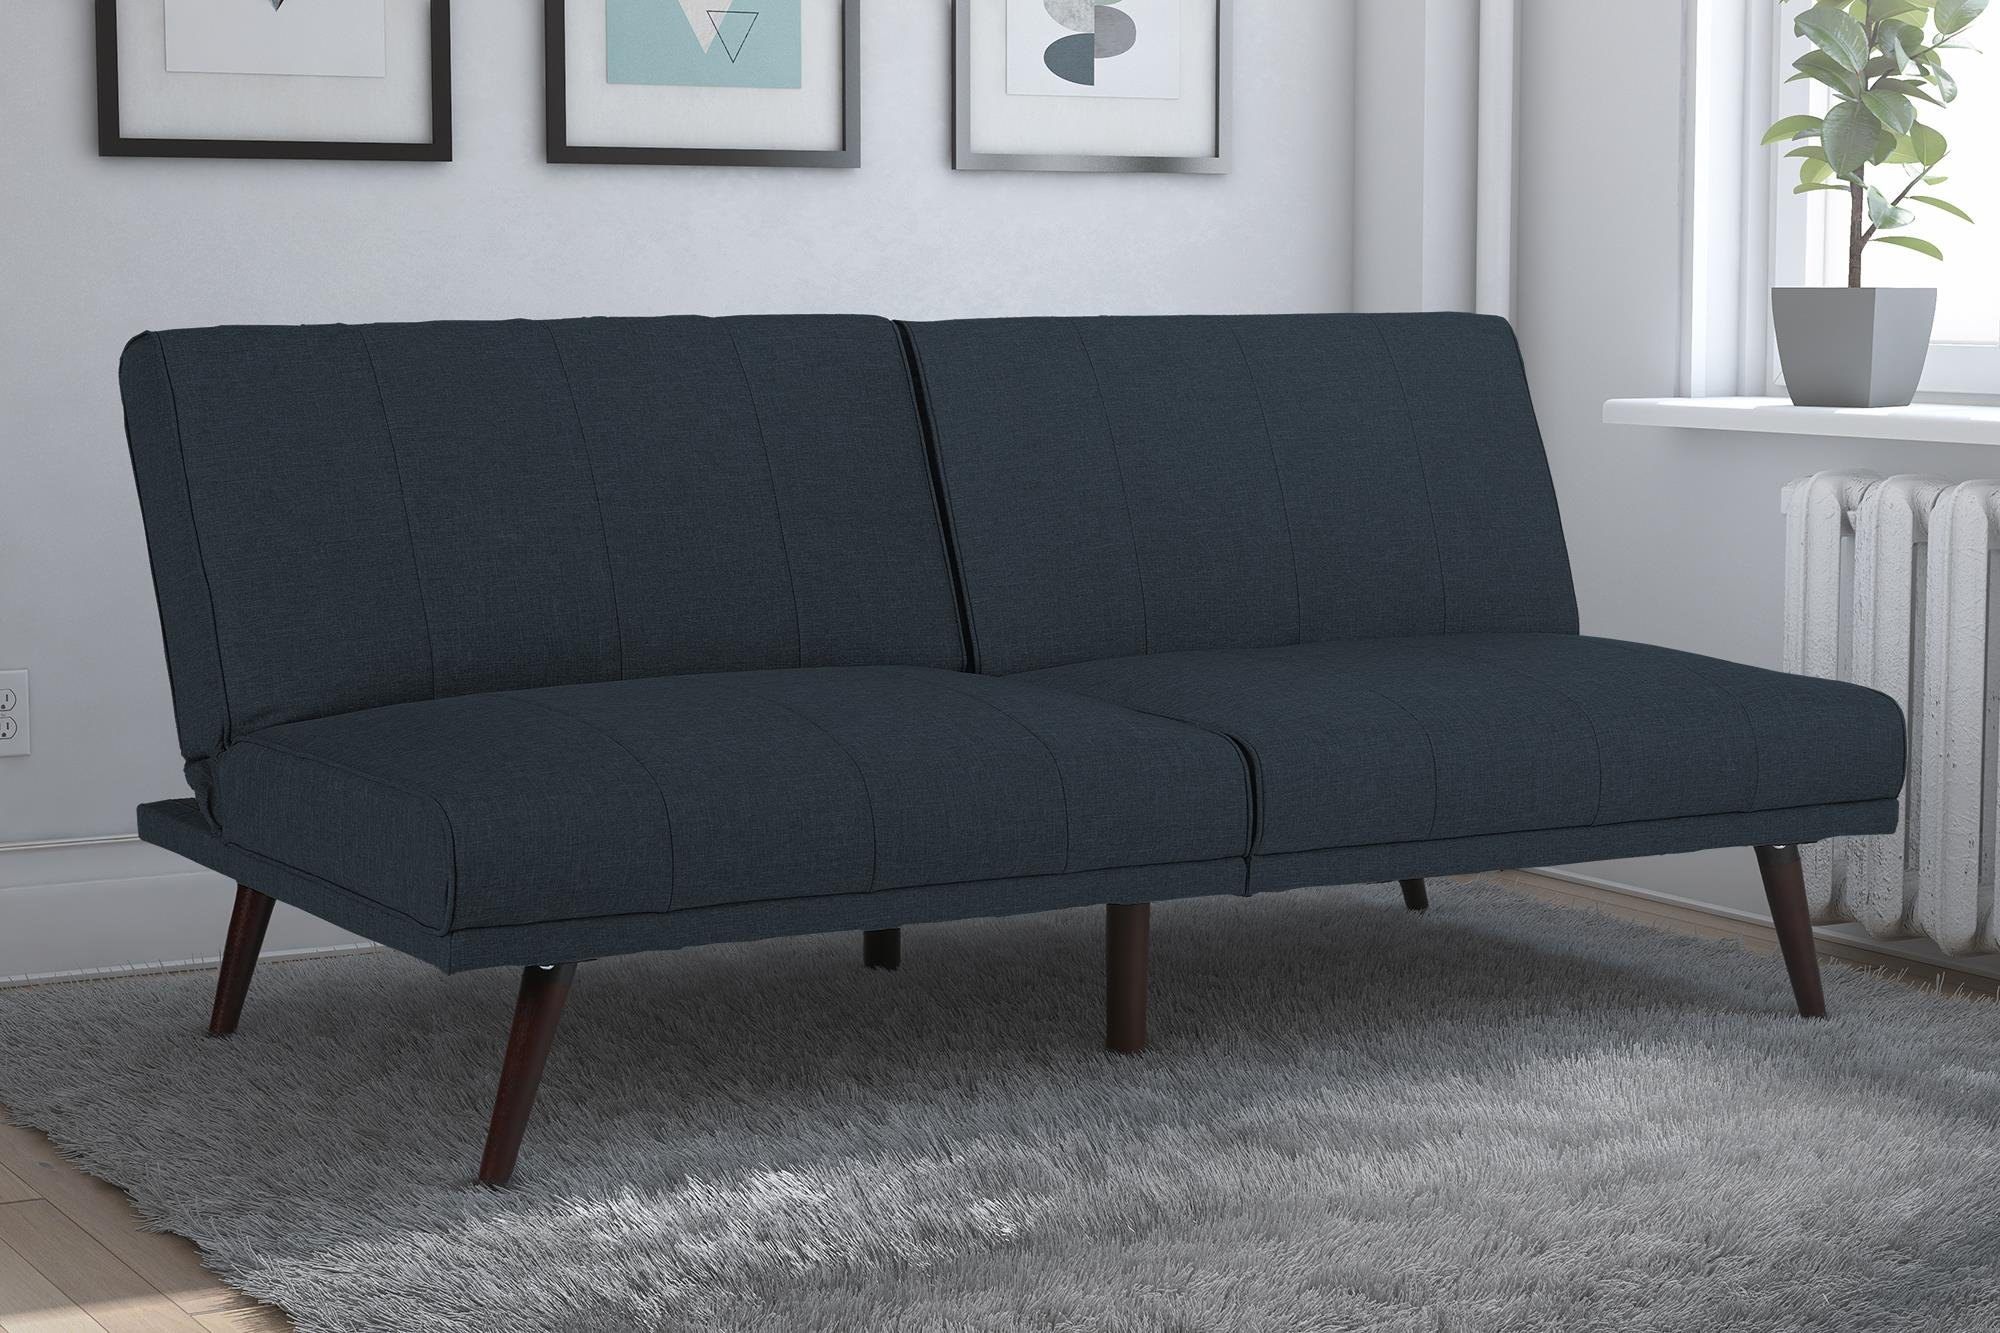 DHP Lone Pine Linen Upholstered Futon, Multi-Position and Split-Back Design, Navy Blue by DHP